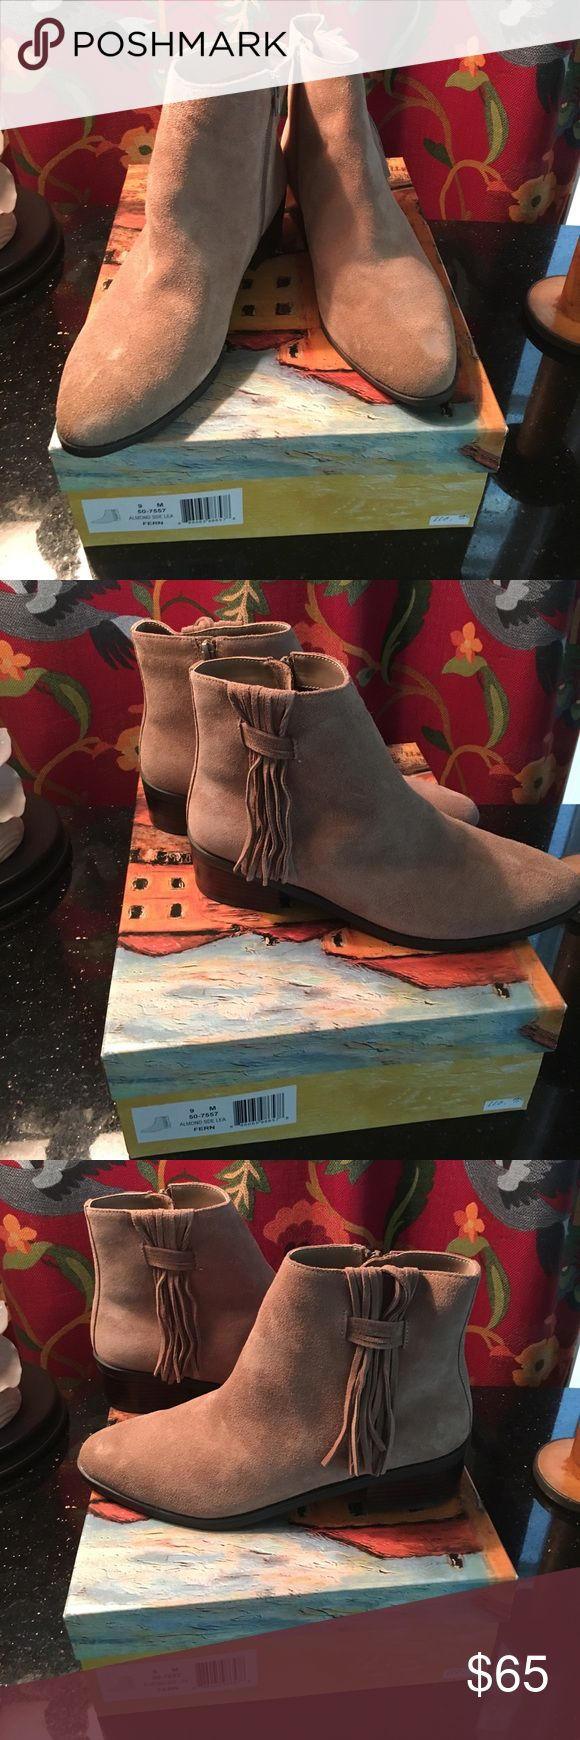 Bella Vita Booties Beautiful new taupe suede boots with fringe at the side and inner zipper Bella Vita Shoes Ankle Boots & Booties